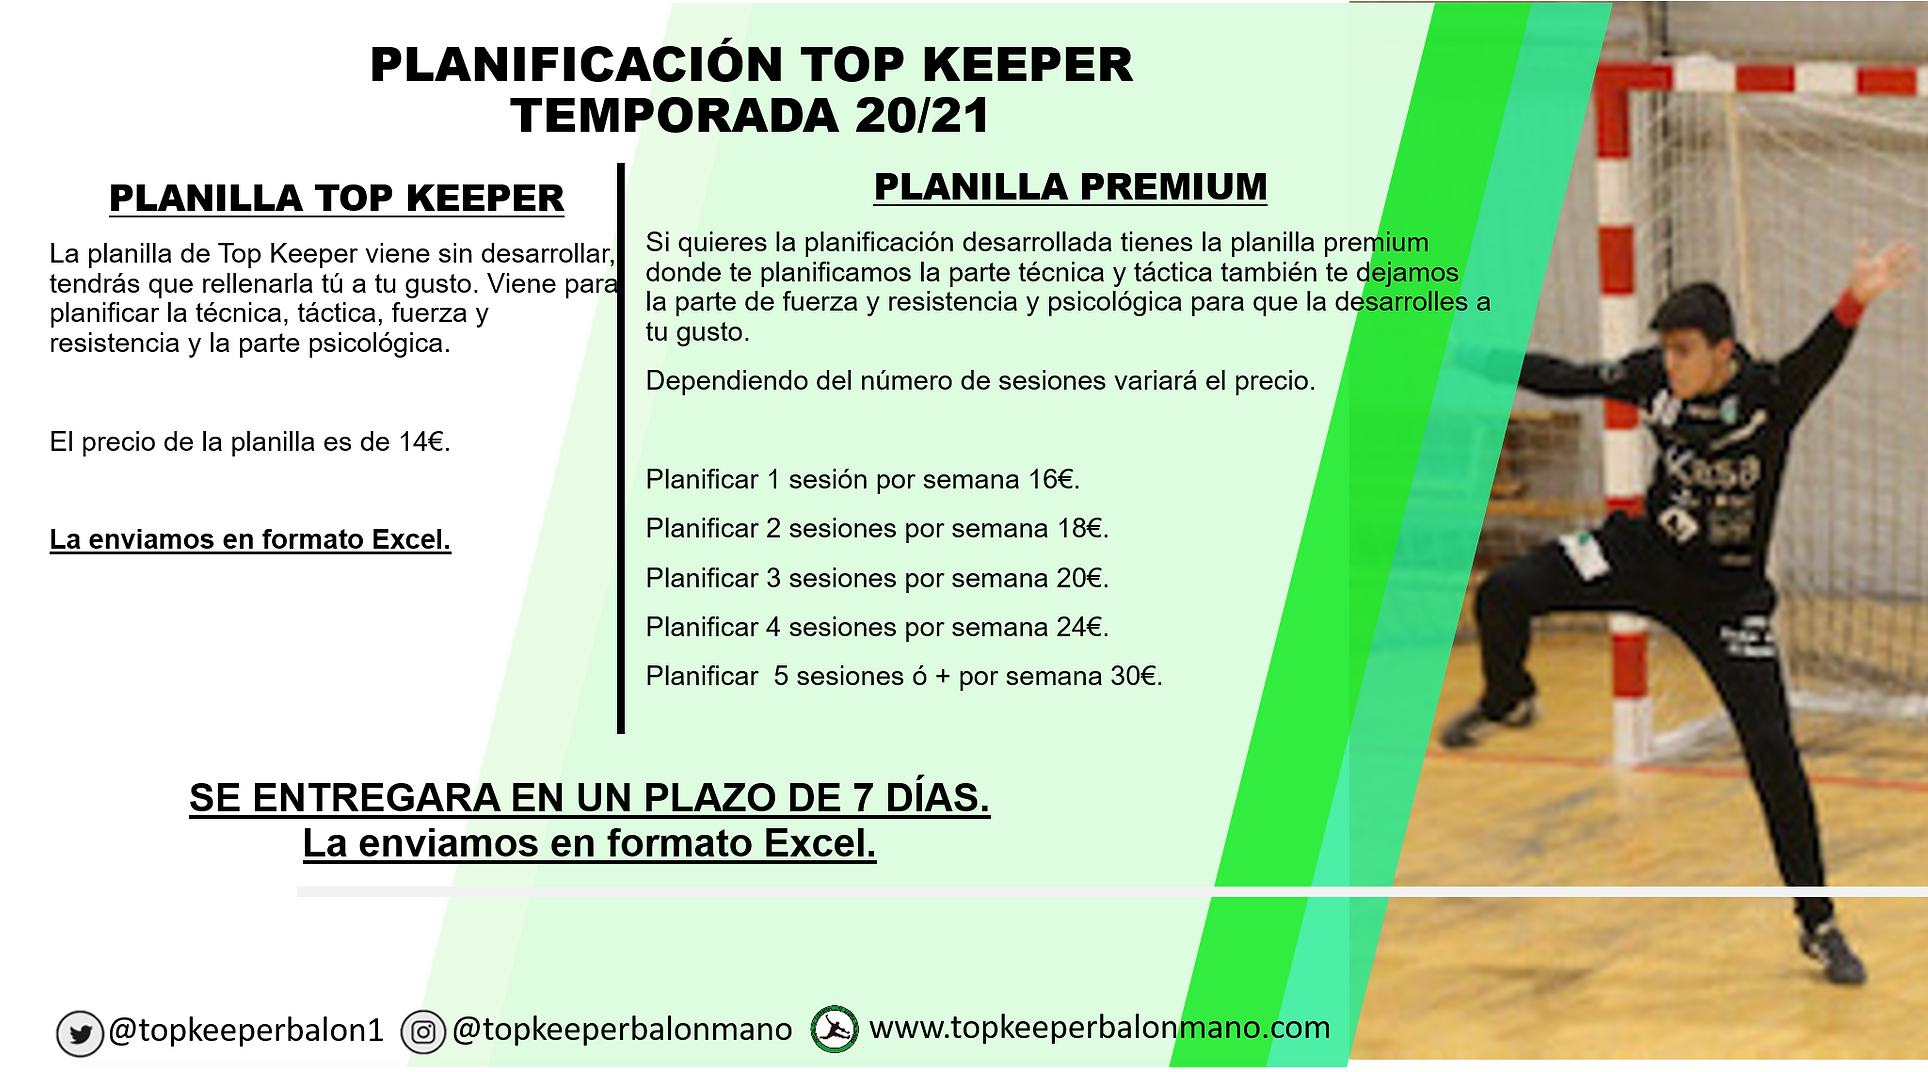 PLANIFICACION TOP KEEPER.png